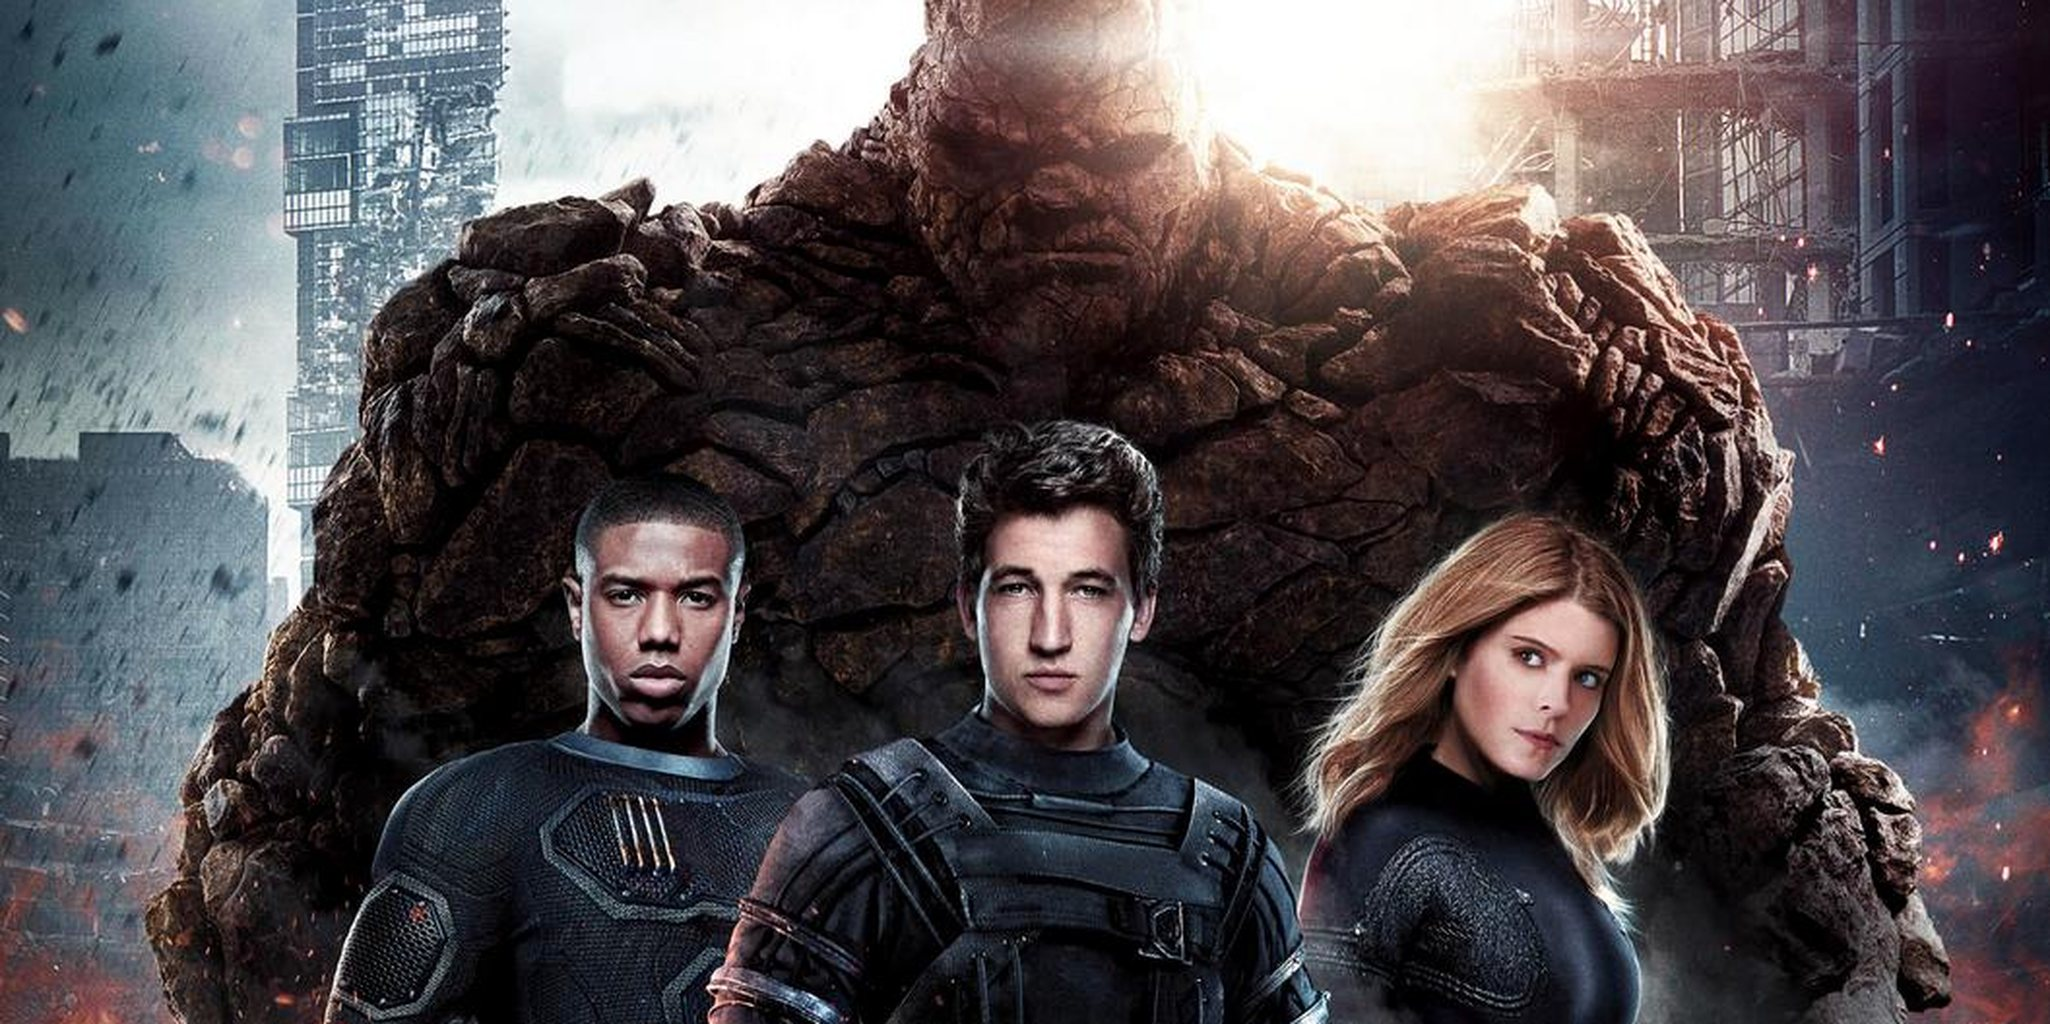 fantastic four 2015 3 reasons why everyone hated the reboot